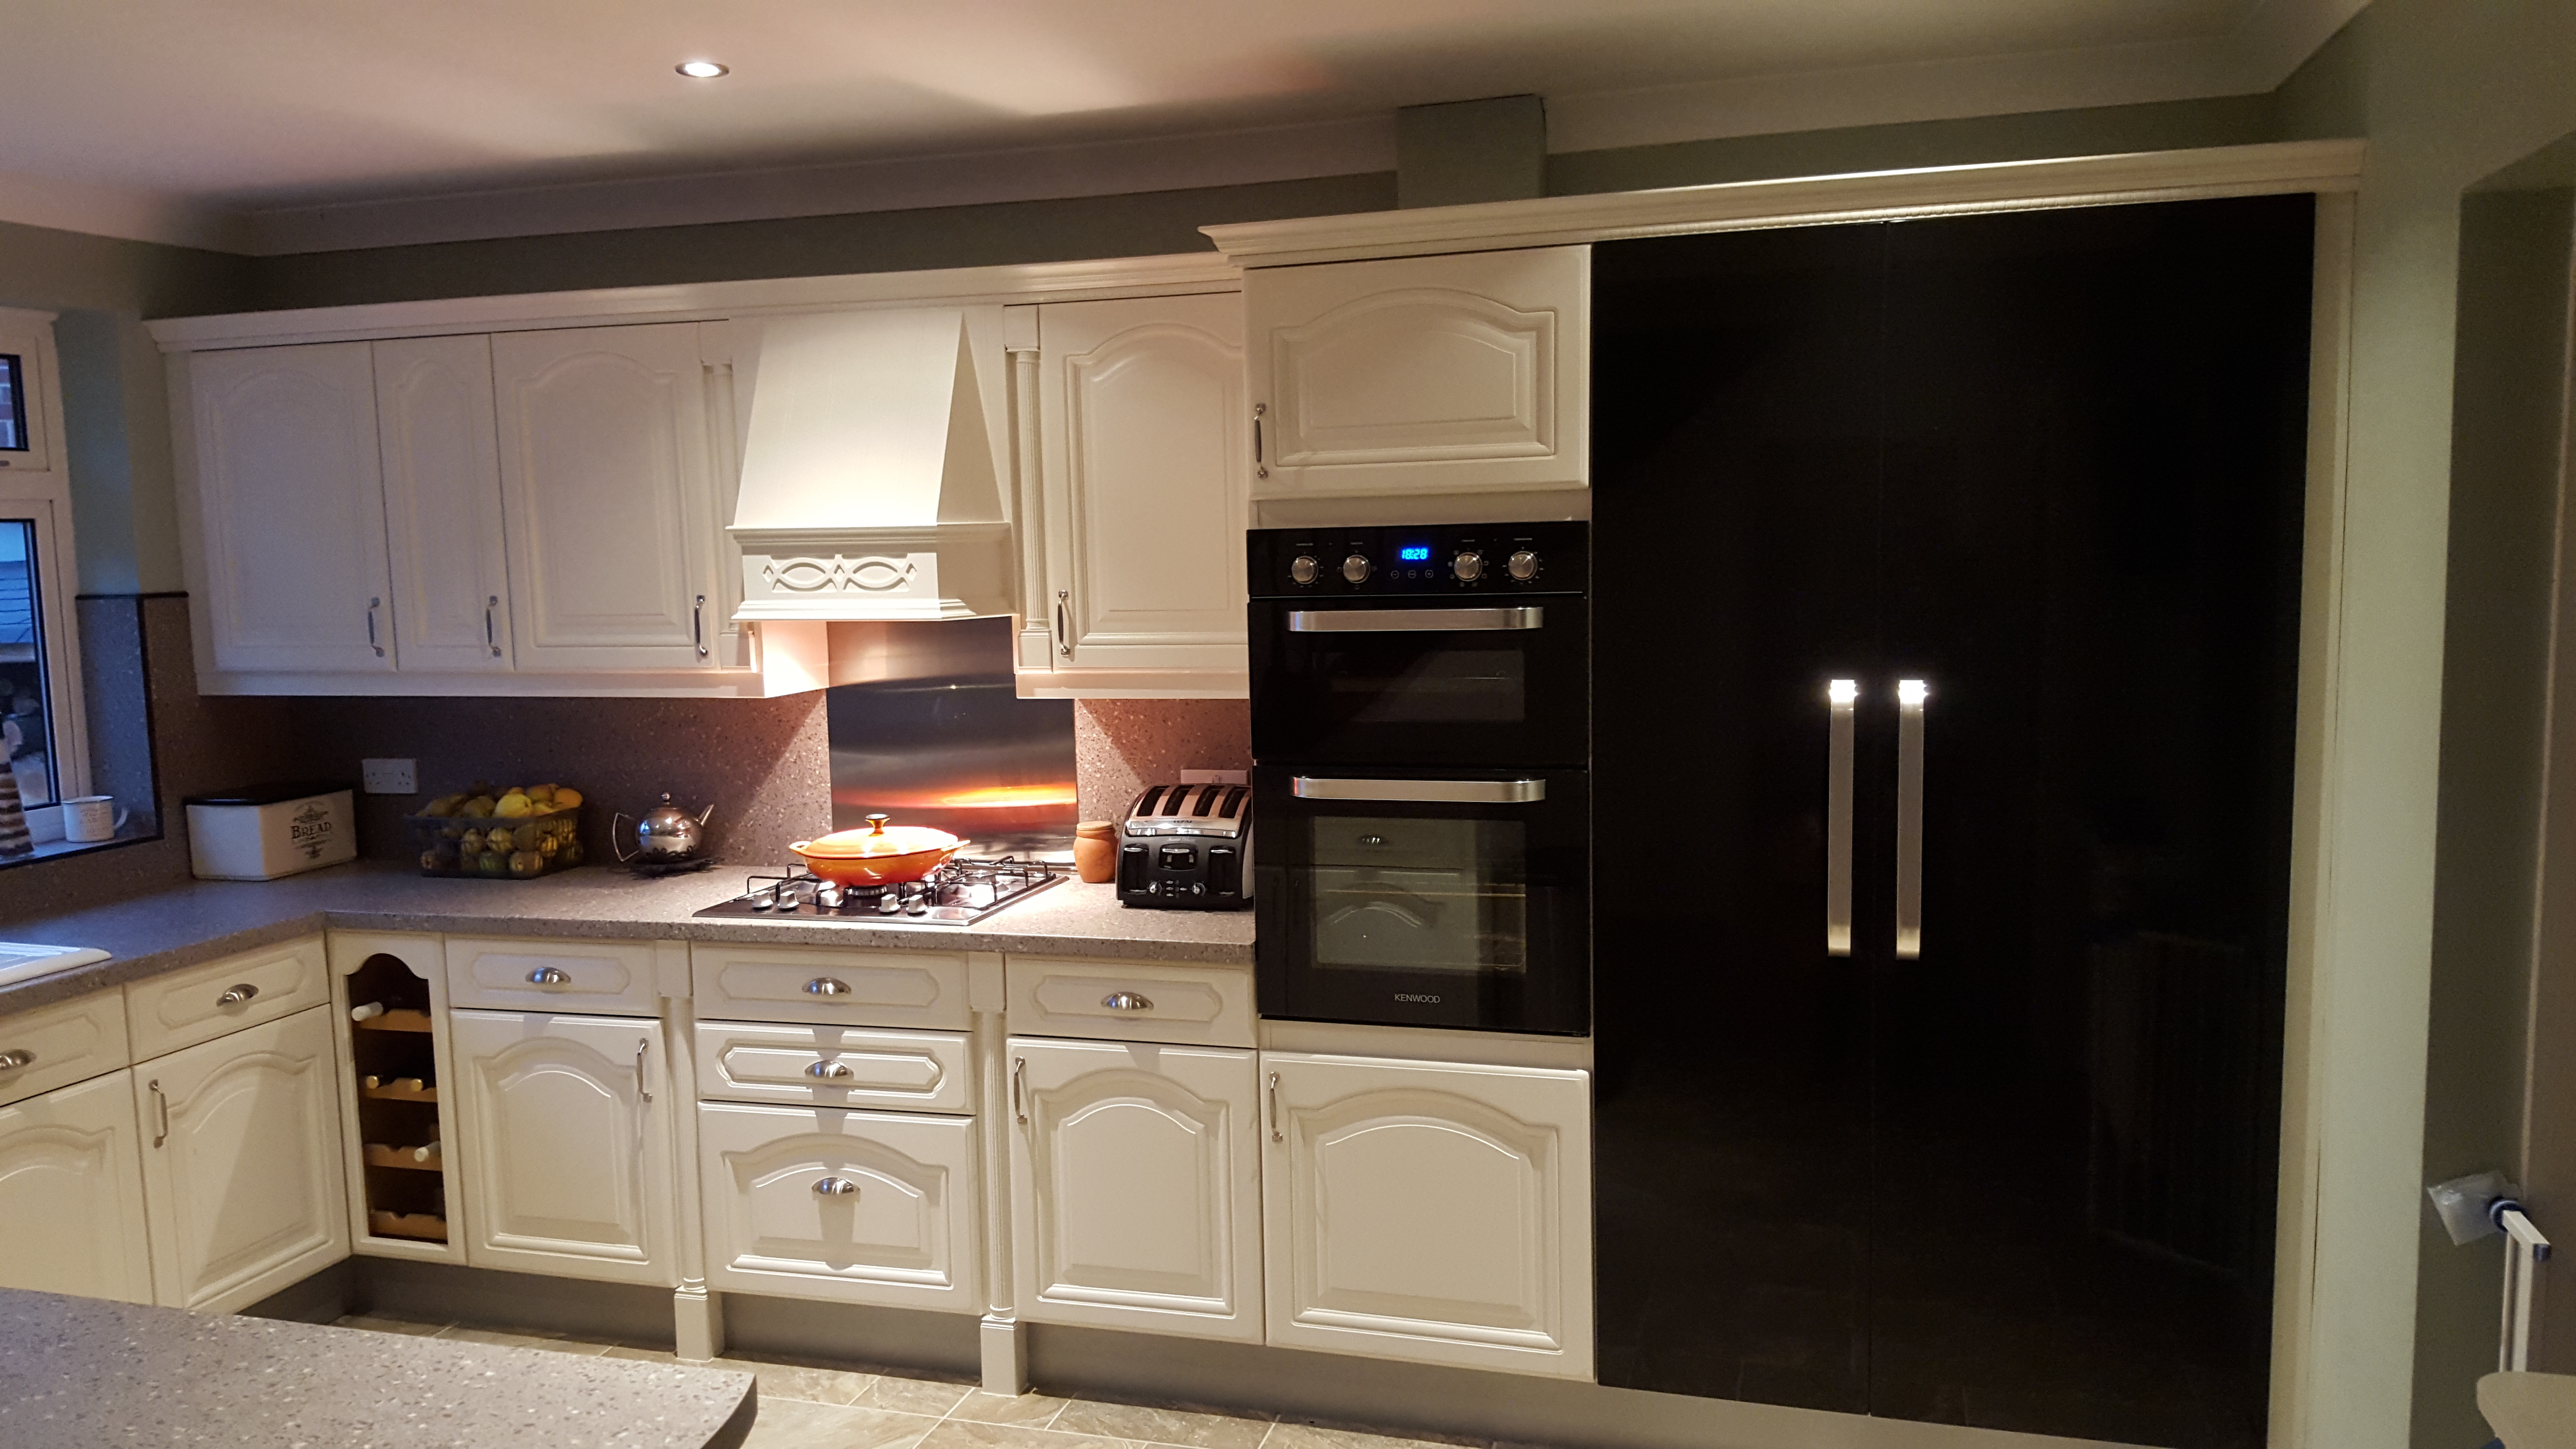 A Single Integrated Freezer Was Fitted And A Custom Made Unit With Shelves  Built Next To It. Both Were Fitted With With Full, High Gloss, Black Doors  To ...